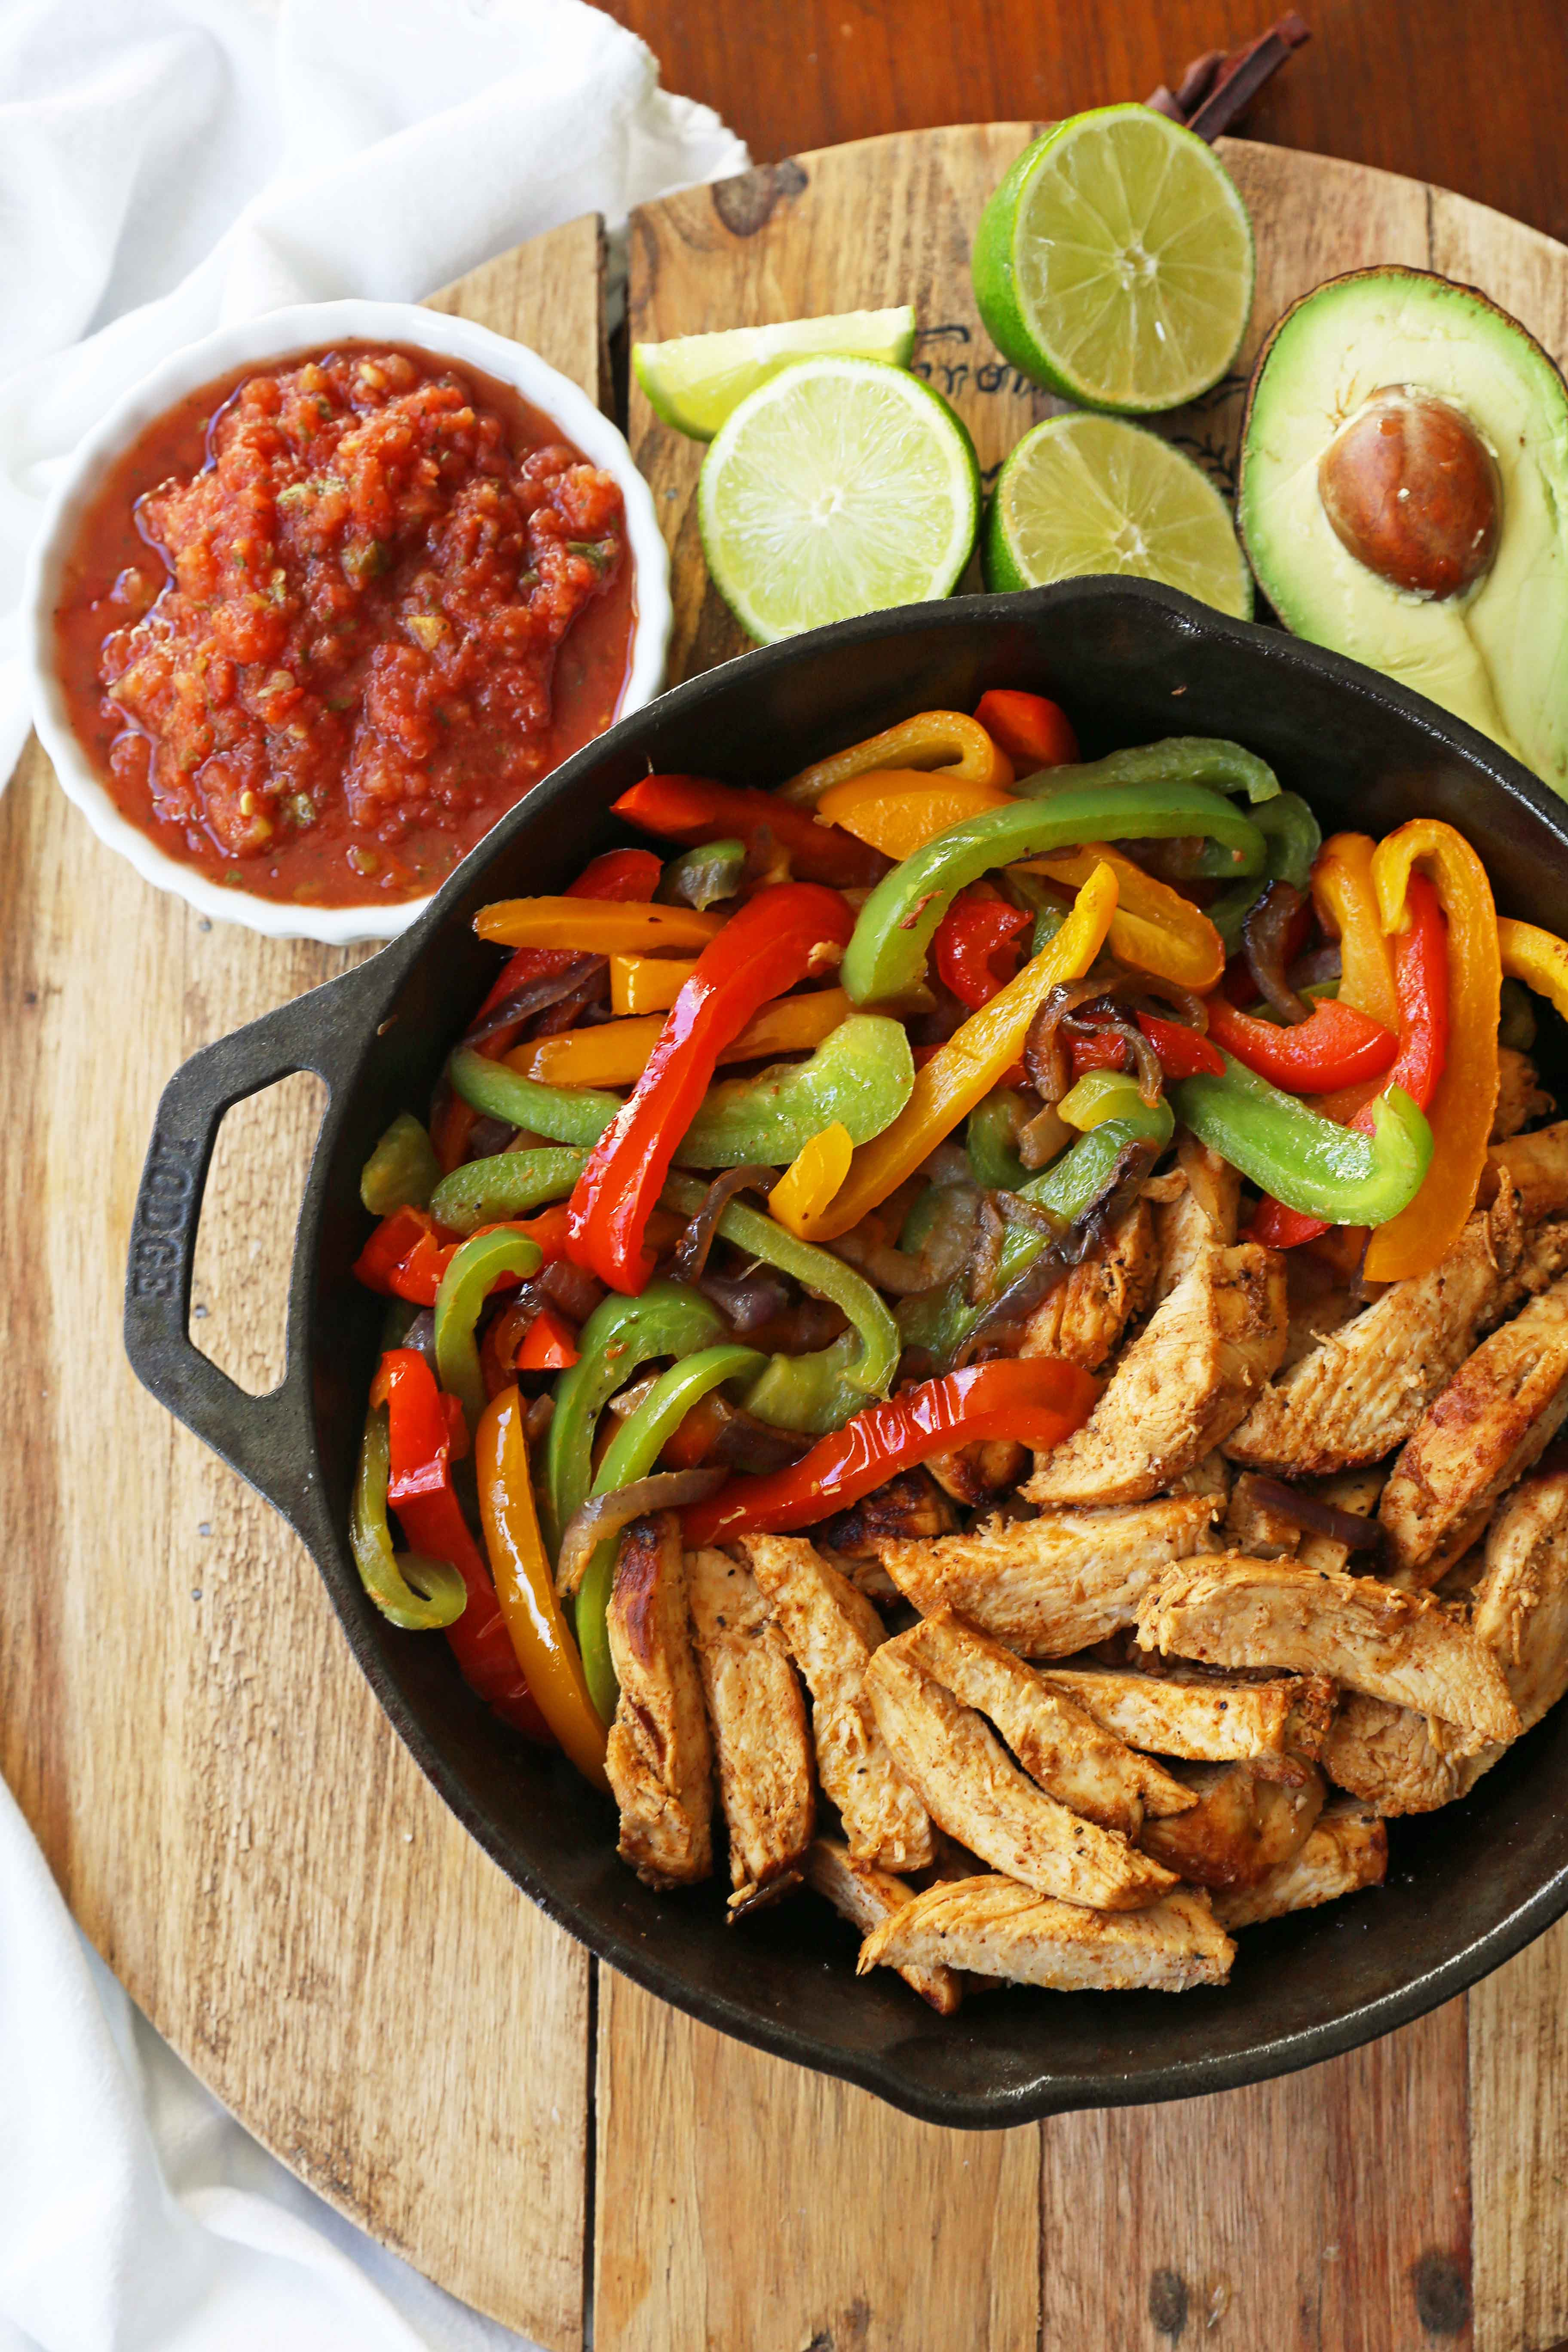 The Best Chicken Fajitas Recipe. Flavorful, juicy, seasoned chicken fajitas with sauteed onions and peppers.  The perfect chicken fajitas recipe! www.modernhoney.com #chicken #chickenfajitas #fajitas #mexican #mexicanfood